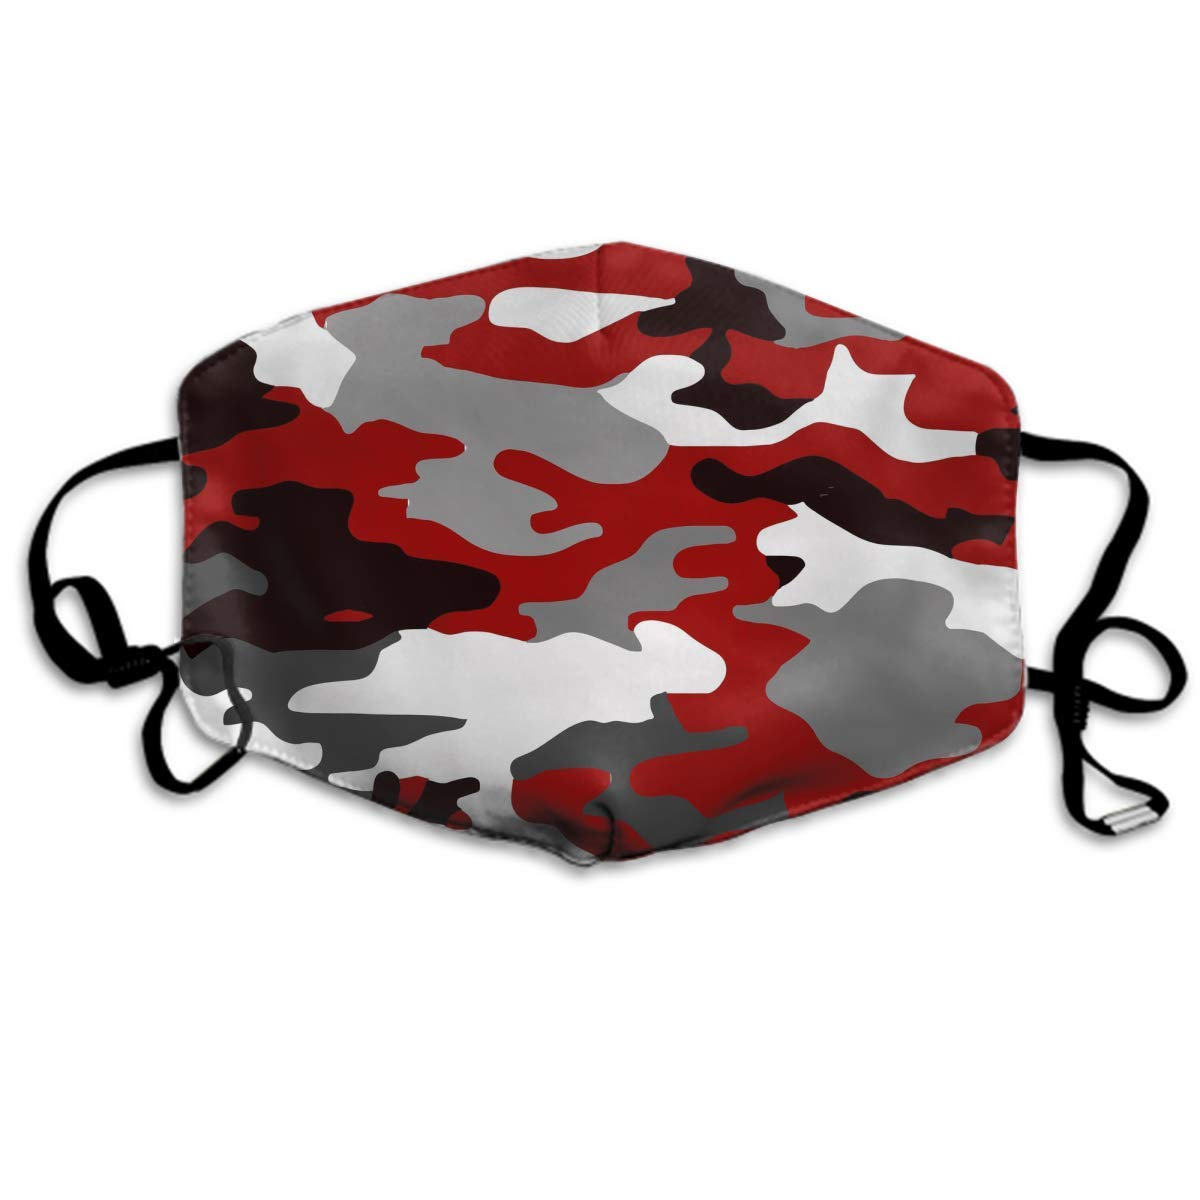 Comfortable Two Layer Dust Mask, Soft Red Camouflage Face Mask Cover Mouth For Adults And Teens